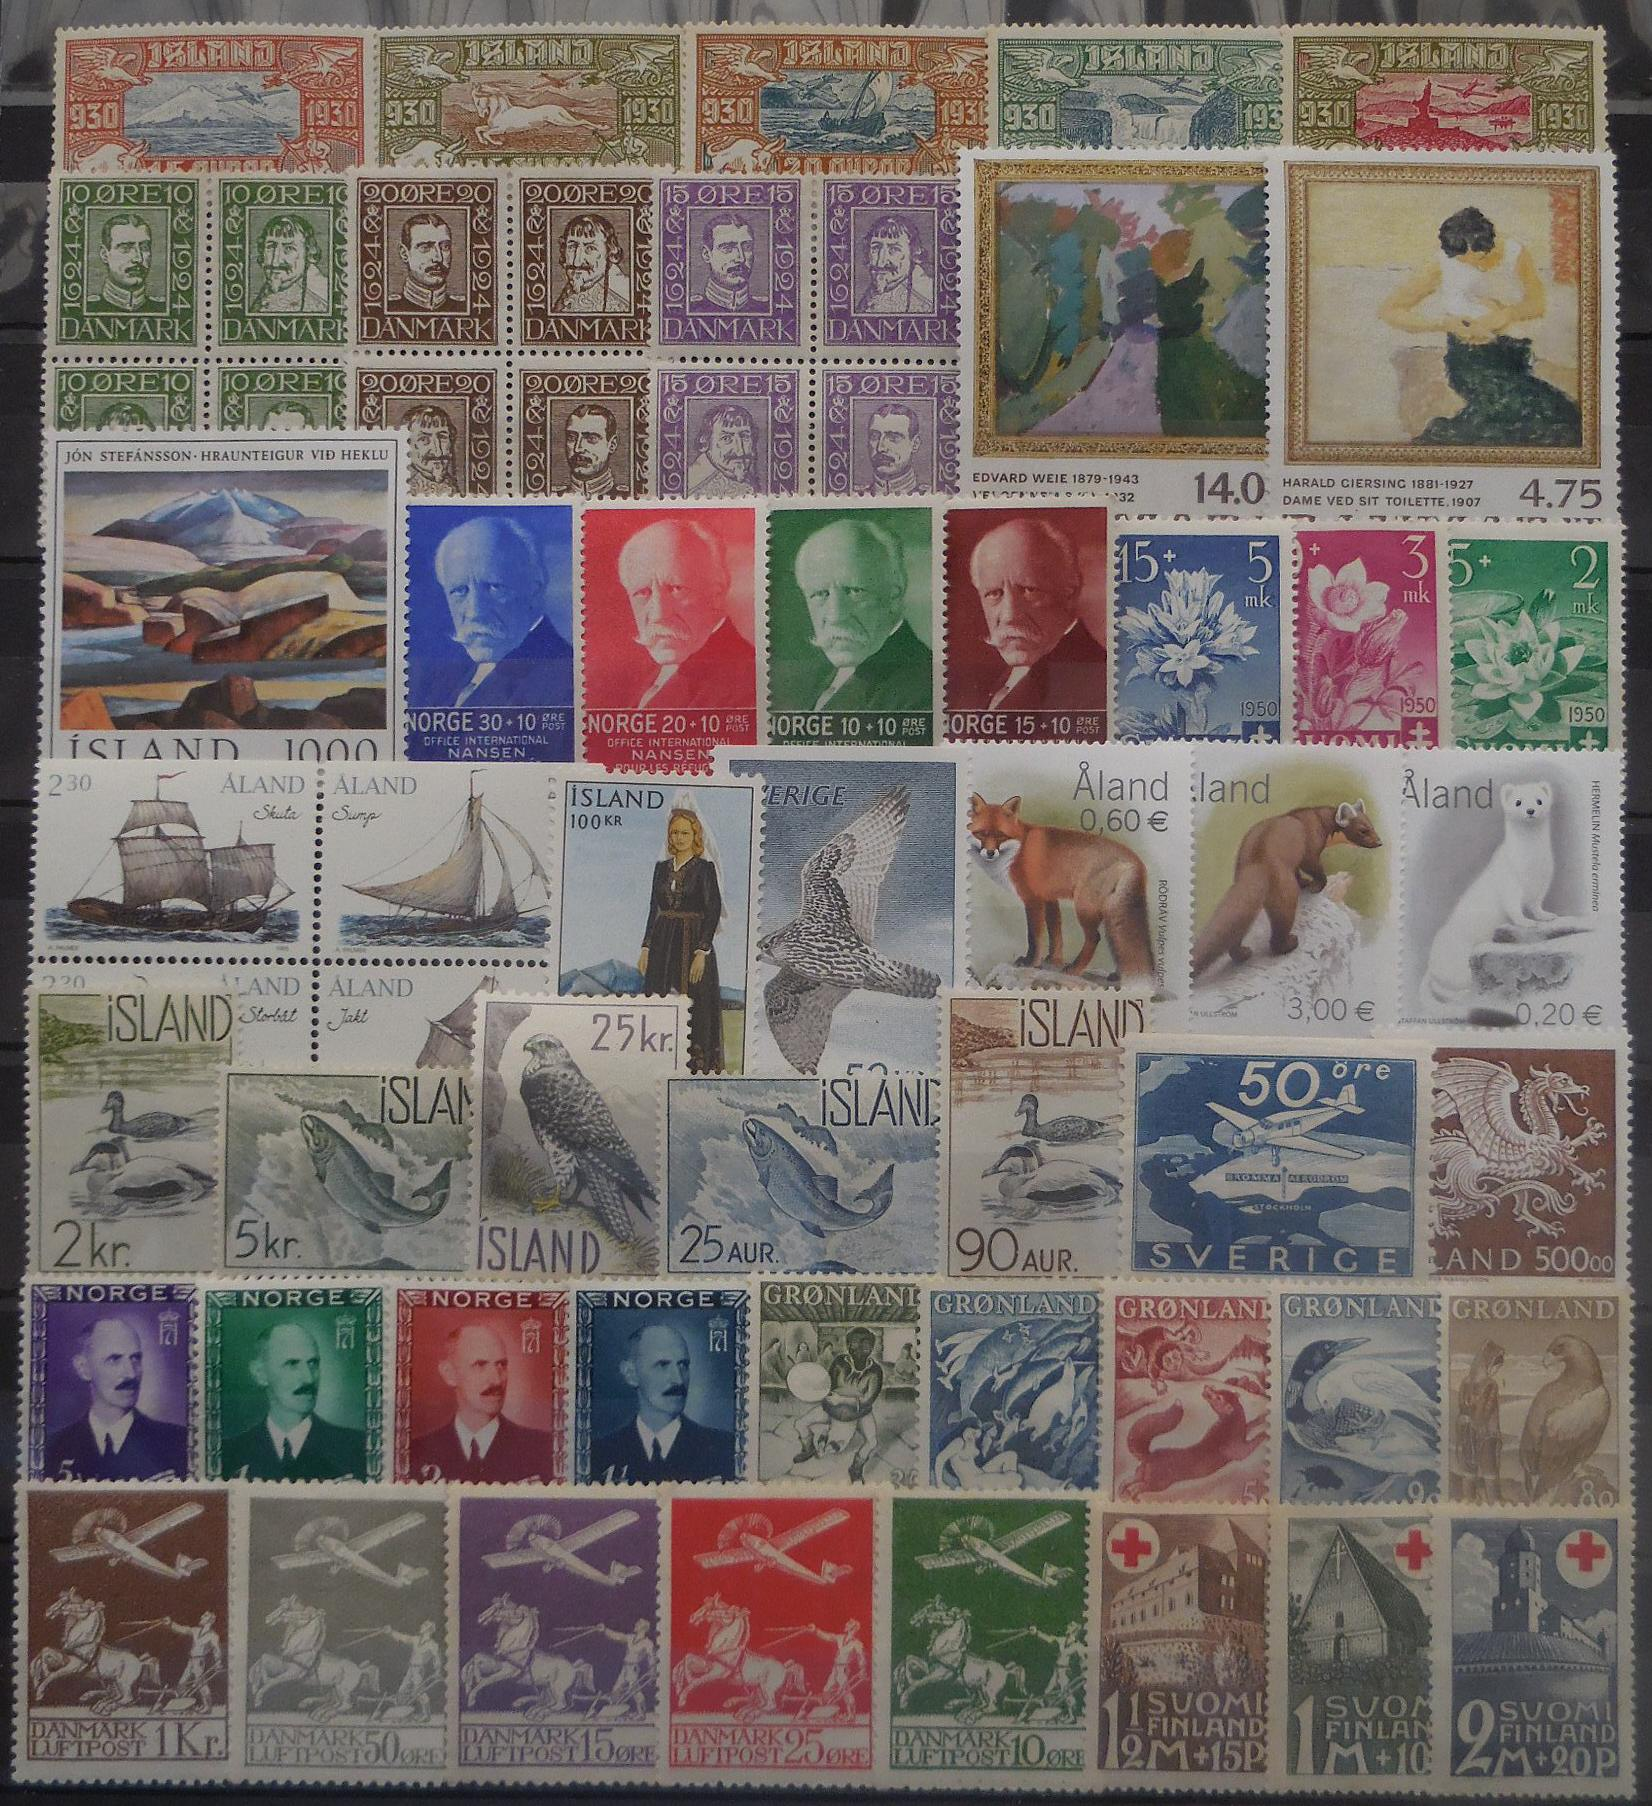 Scandinavian stamps for collectors on approval